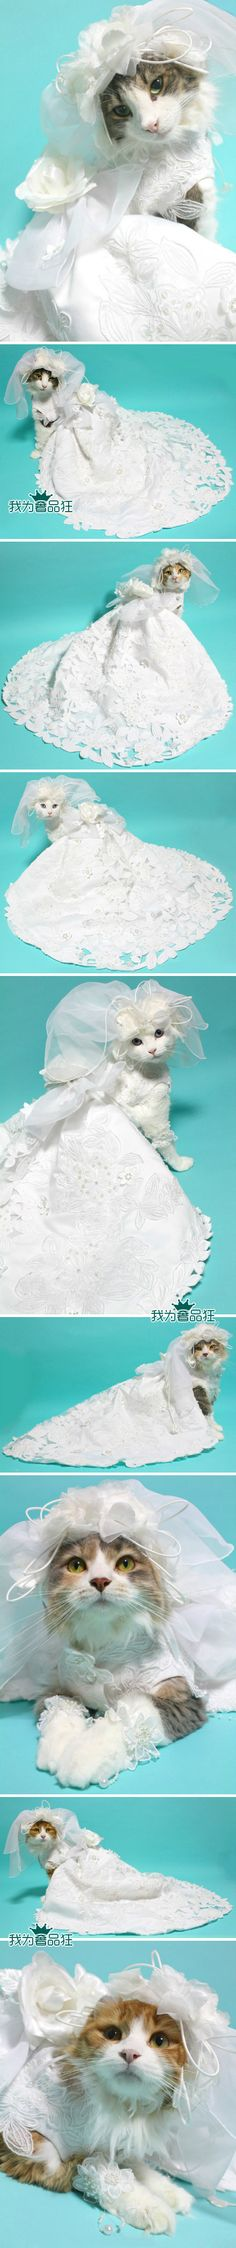 cat`s wedding dress. You have no idea how this makes me feel inside!